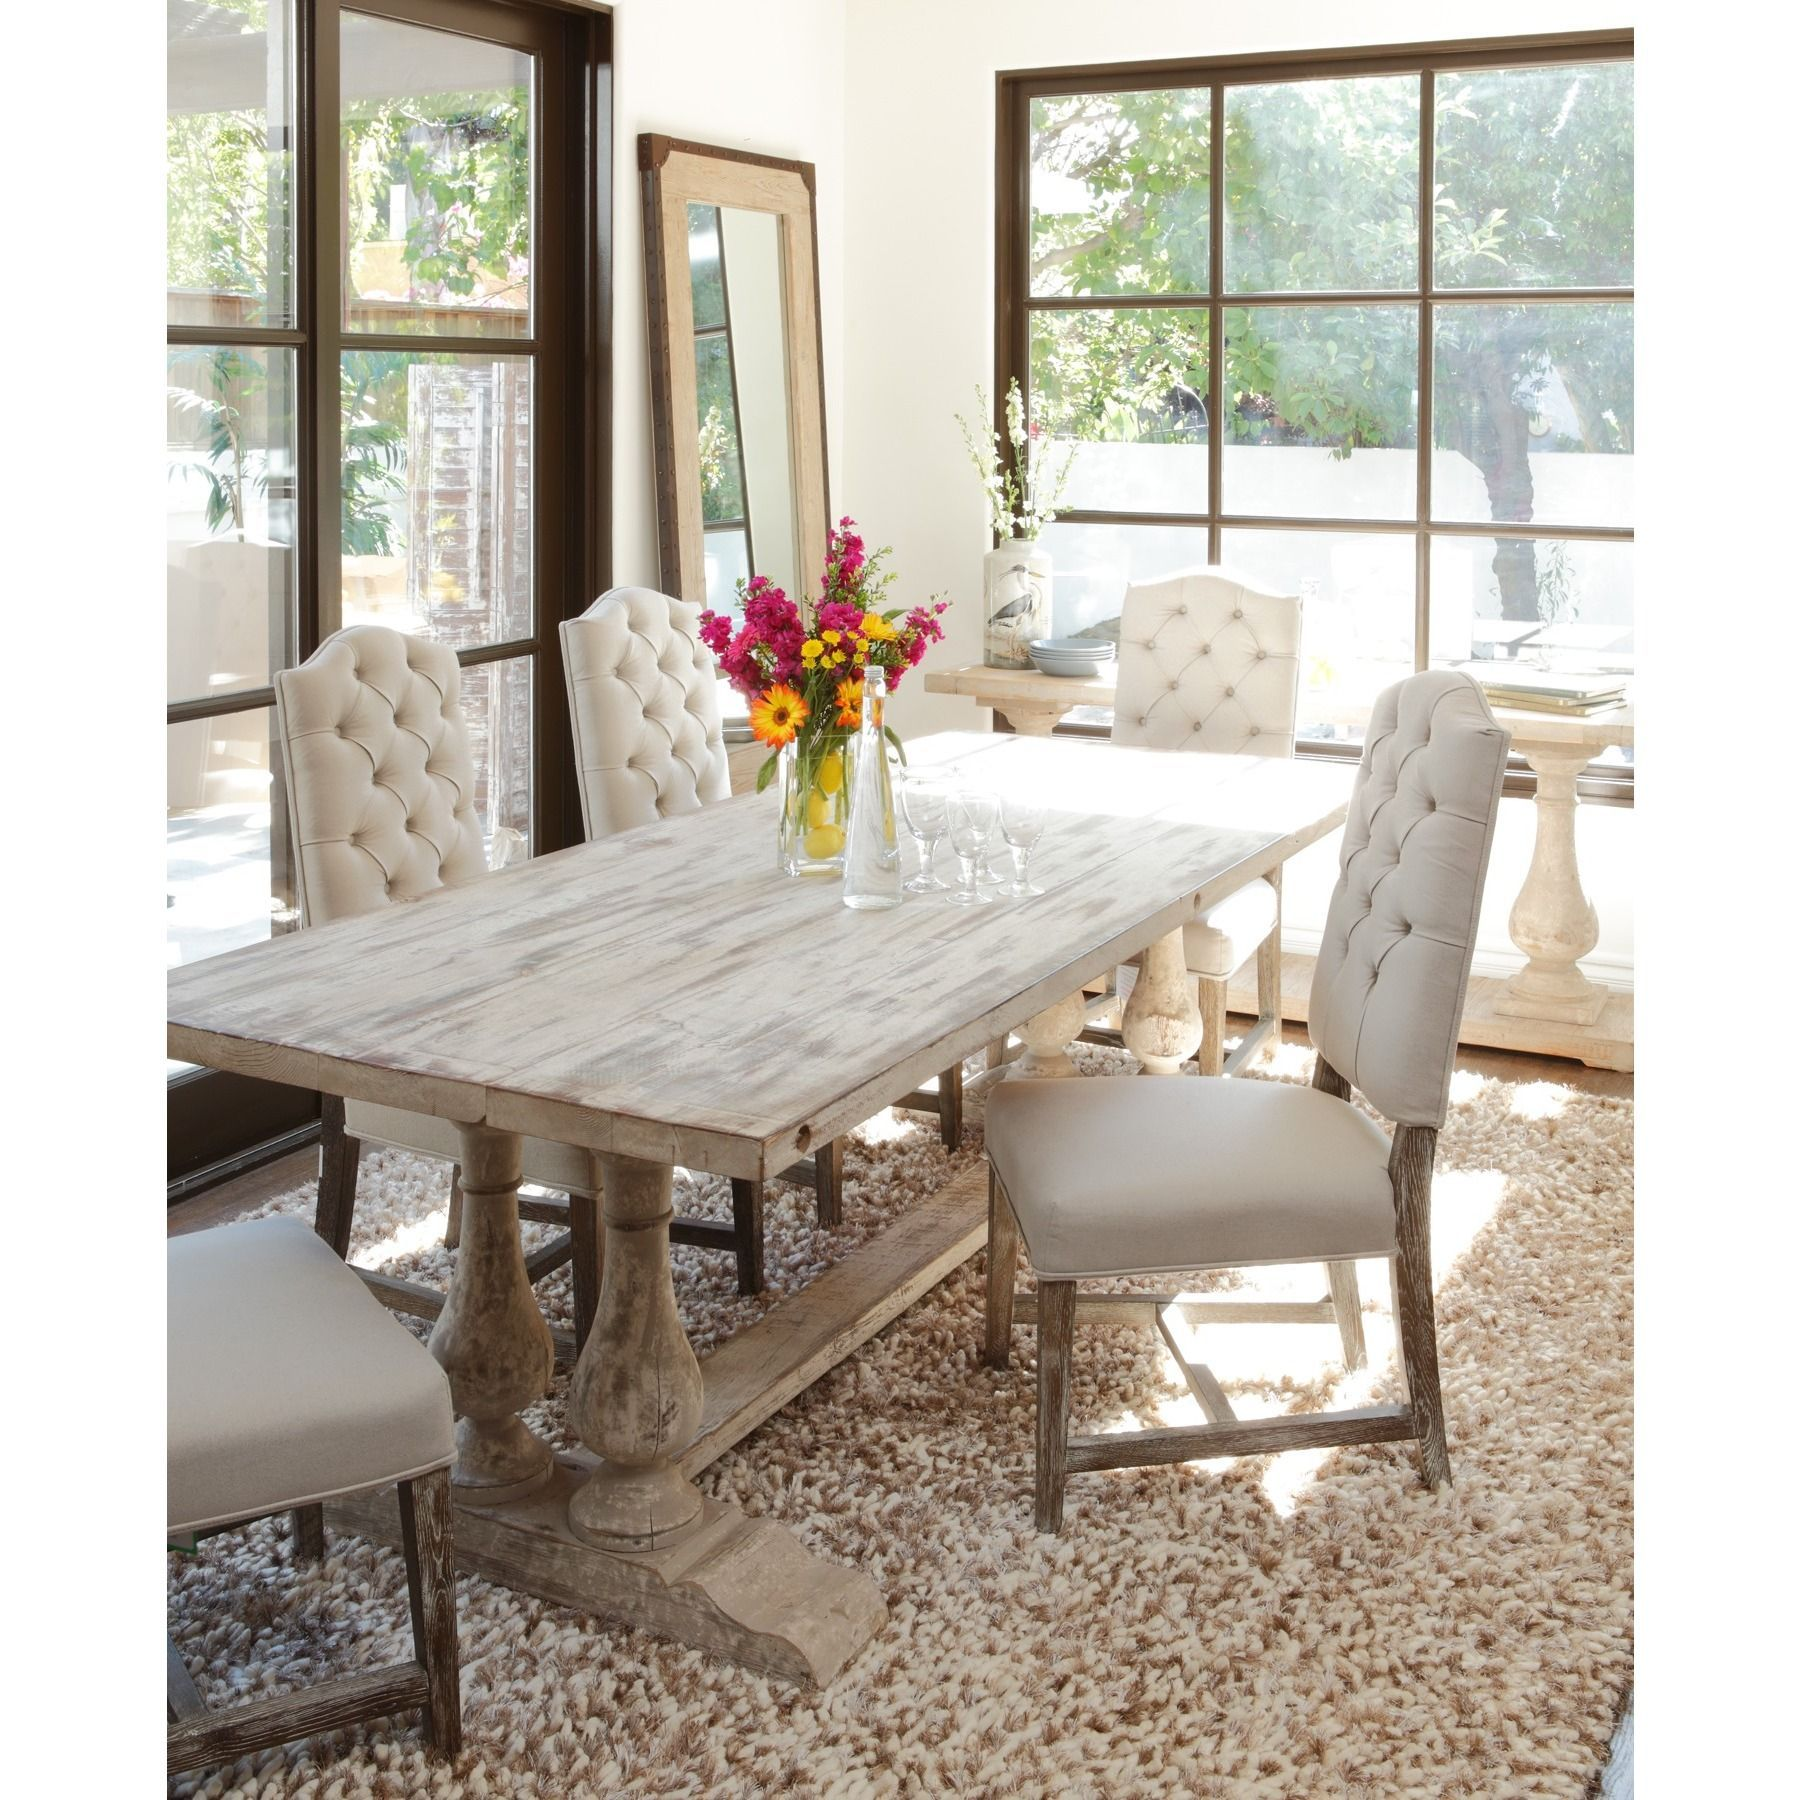 This handsome dining table is constructed of reclaimed